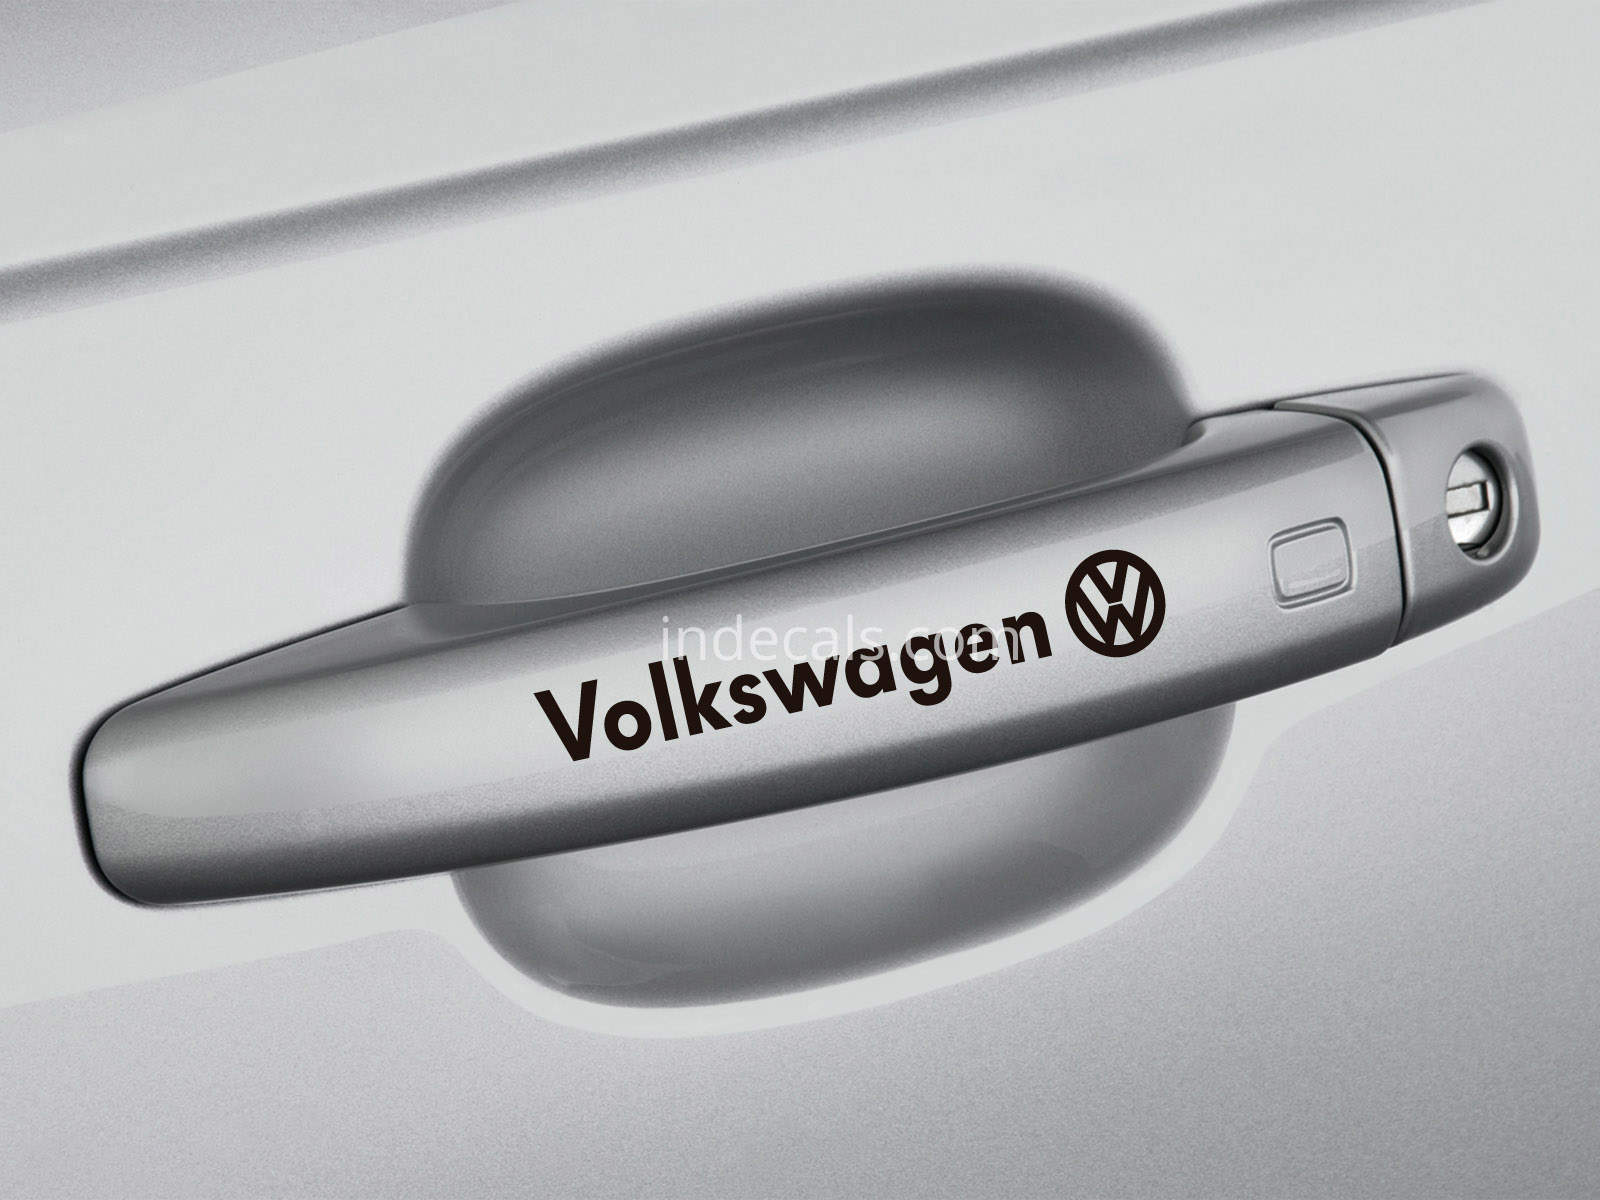 6 x Volkswagen Stickers for Door Handles - Black